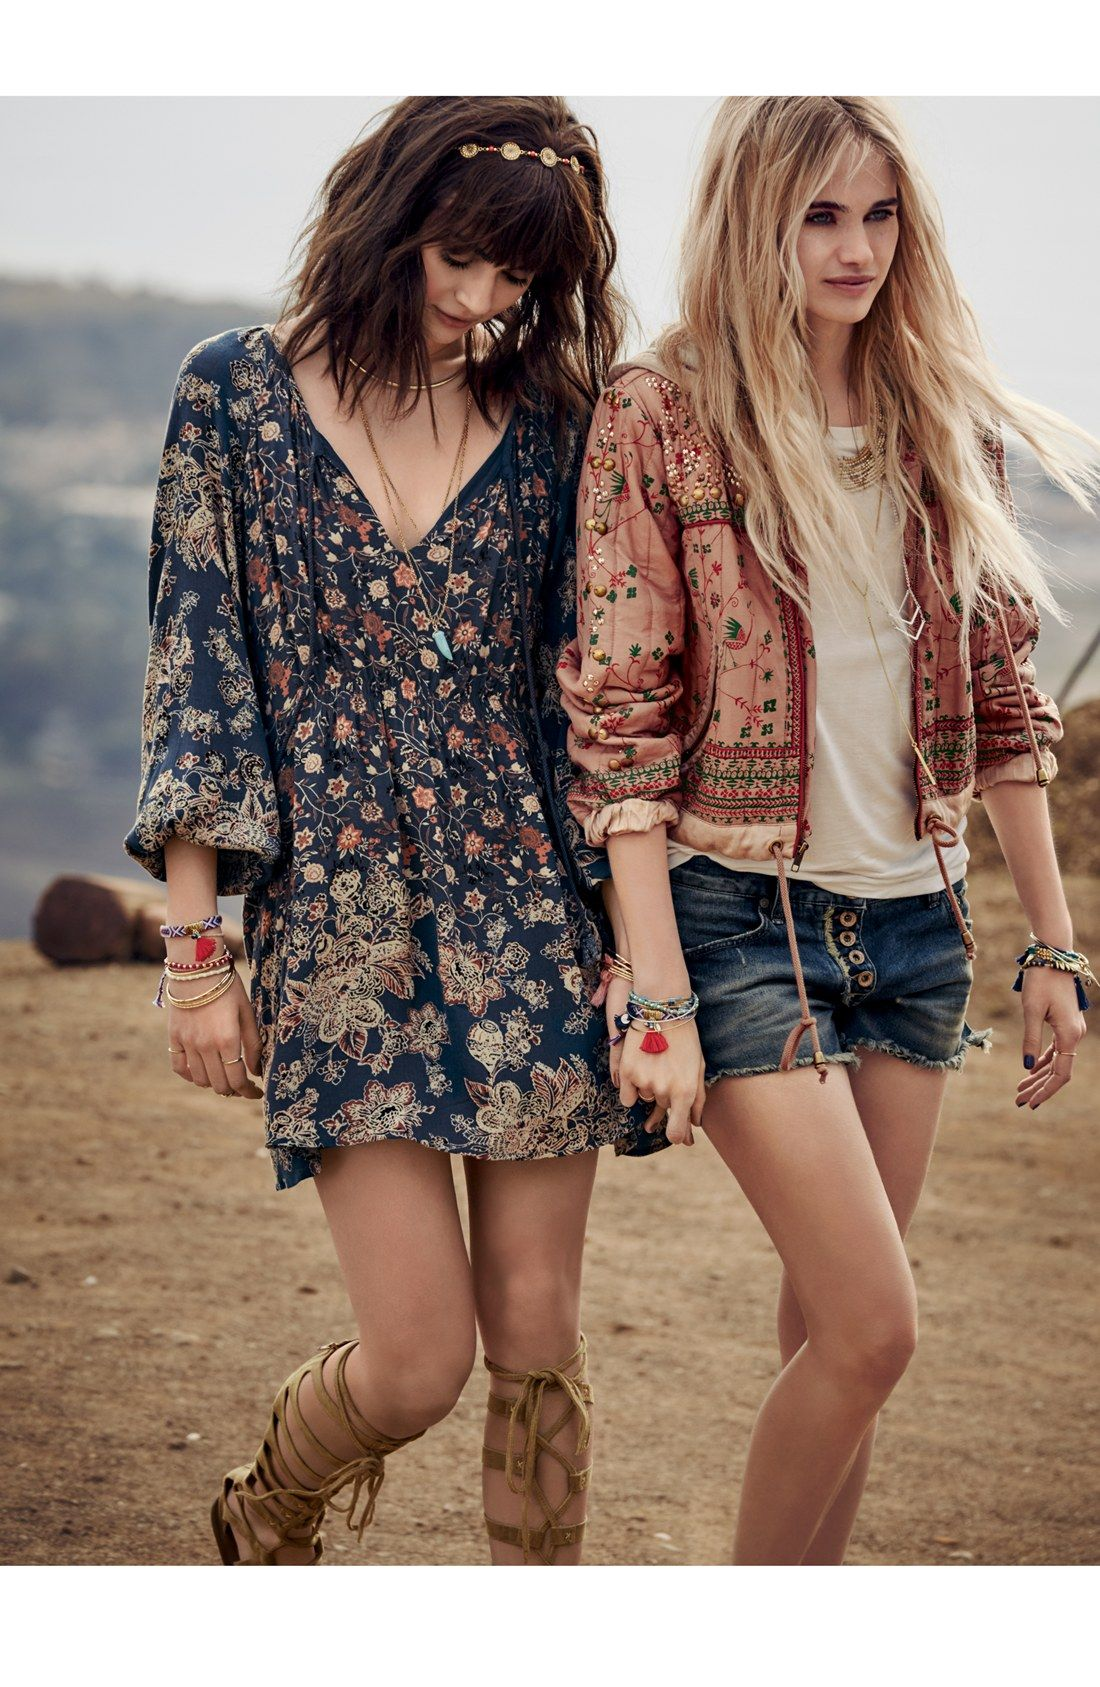 The Dress Free People Quilted Hoodies Cutoff Denim Shorts